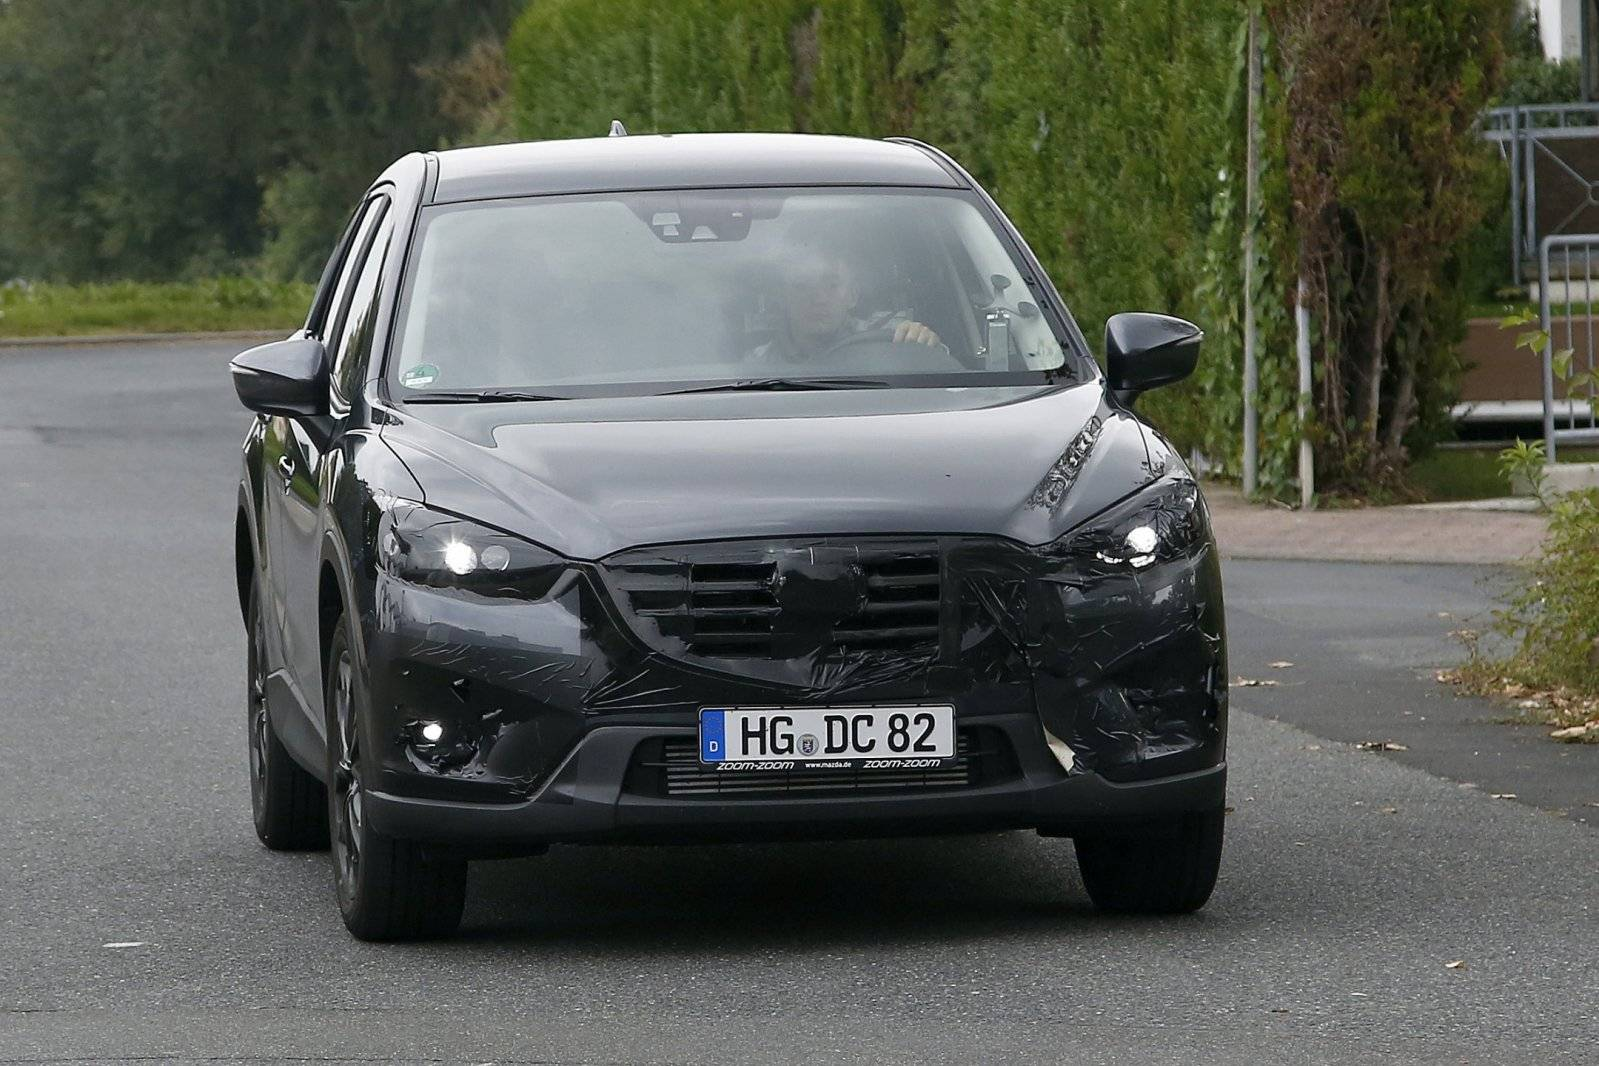 cx 5 facelift release date price and specs. Black Bedroom Furniture Sets. Home Design Ideas